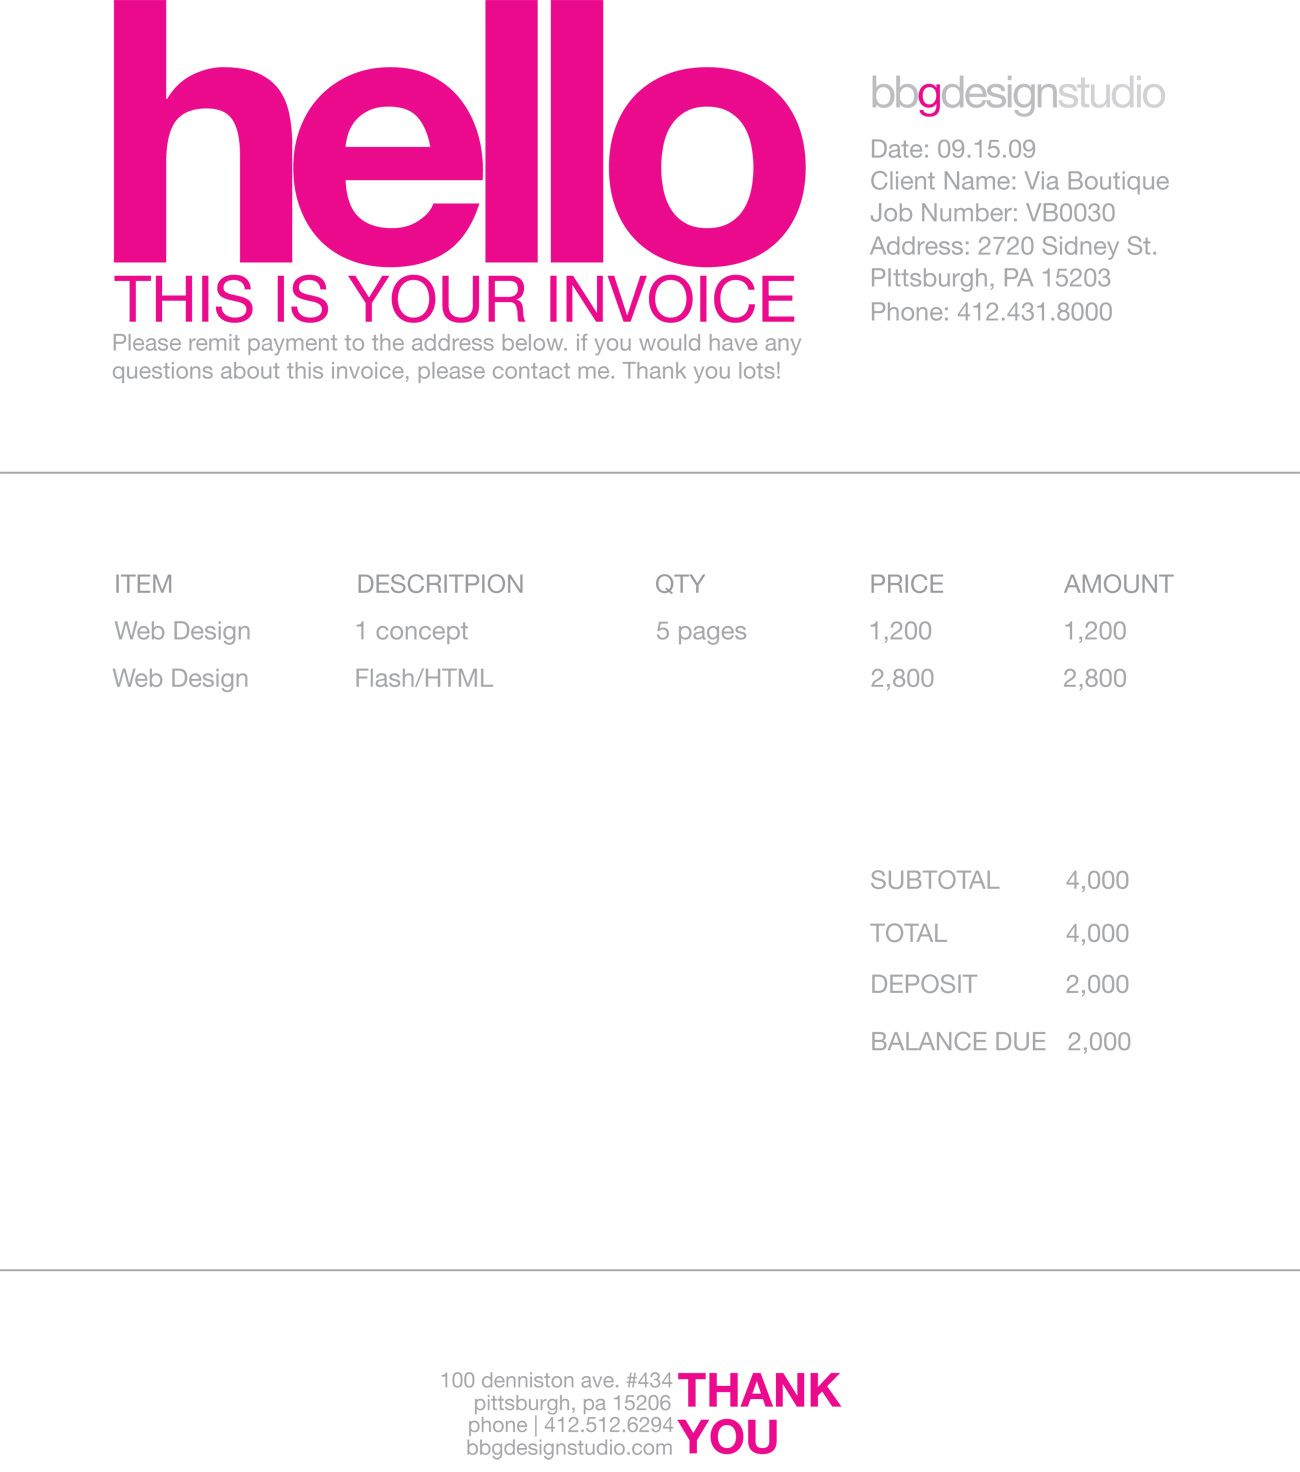 Totallocalus  Winsome  Images About Invoice Design On Pinterest With Foxy Receipt Clipboard Besides Free Rent Receipt Printable Furthermore Request Read Receipt Hotmail With Captivating Taxi Receipt Atlanta Also What Are Tax Receipts In Addition Order Receipt And What Is Warehouse Receipt As Well As What Is An E Receipt Additionally Sample Cash Receipt Template From Pinterestcom With Totallocalus  Foxy  Images About Invoice Design On Pinterest With Captivating Receipt Clipboard Besides Free Rent Receipt Printable Furthermore Request Read Receipt Hotmail And Winsome Taxi Receipt Atlanta Also What Are Tax Receipts In Addition Order Receipt From Pinterestcom